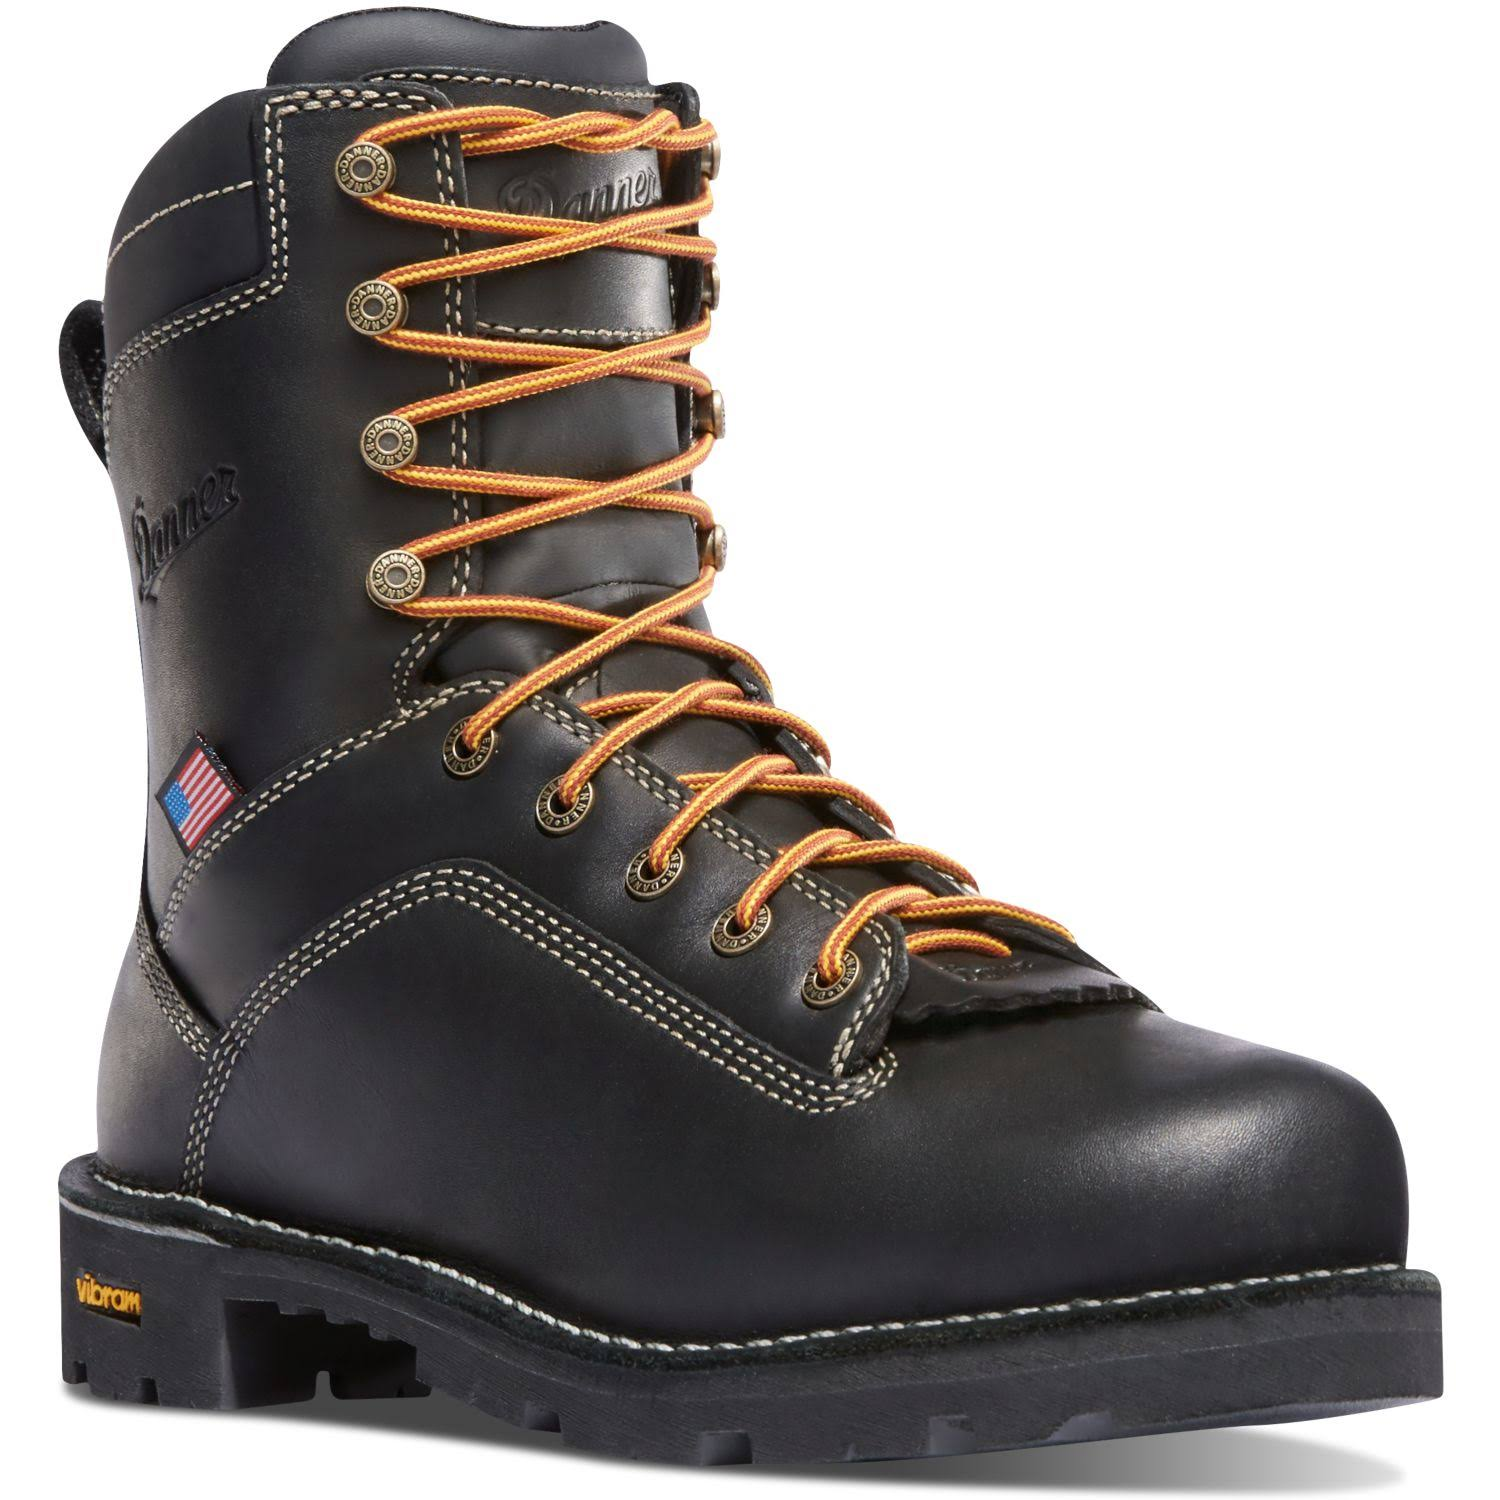 Danner Men's Quarry USA Alloy Toe Work Boot - Black, 9.5 US